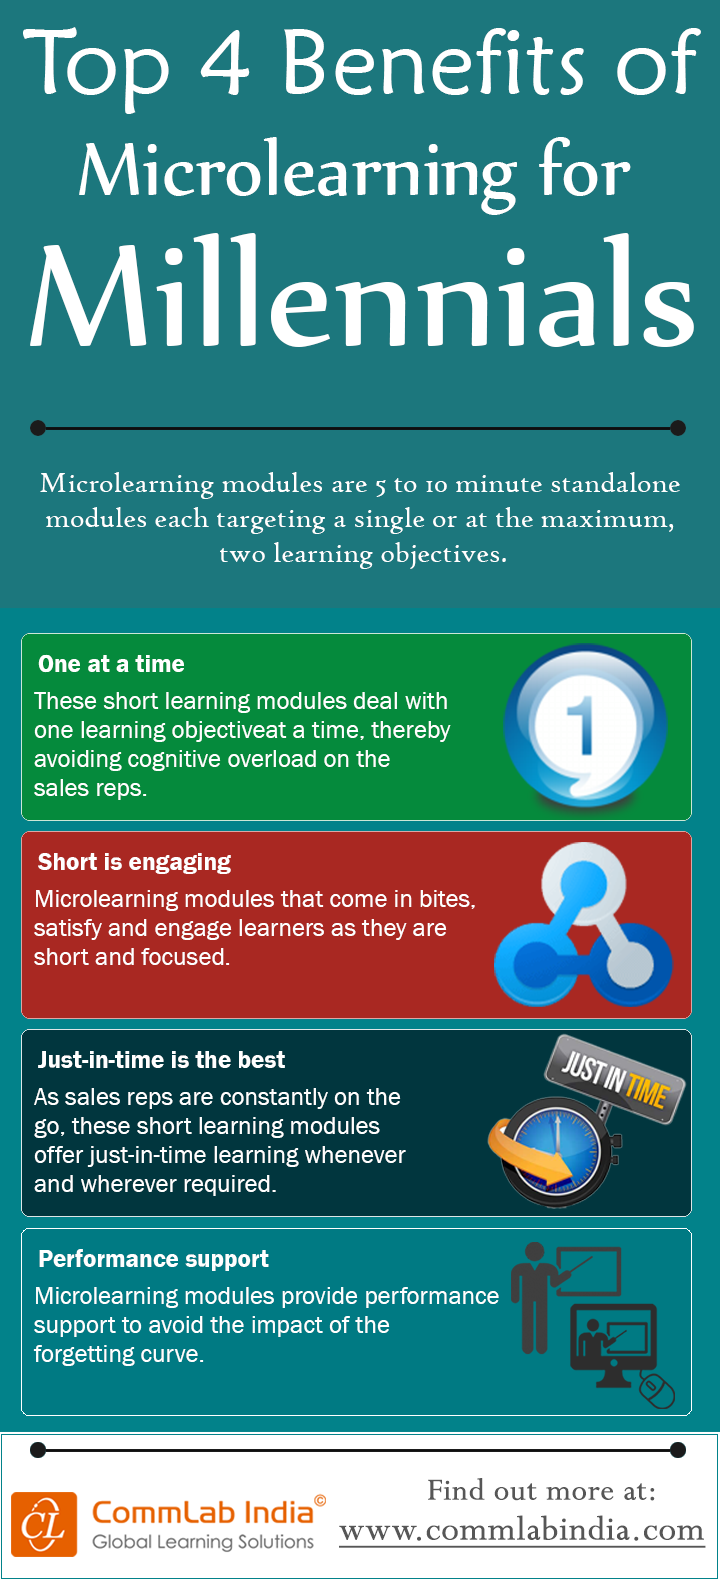 Top 4 Benefits of Microlearning for Millennials [Infographic]